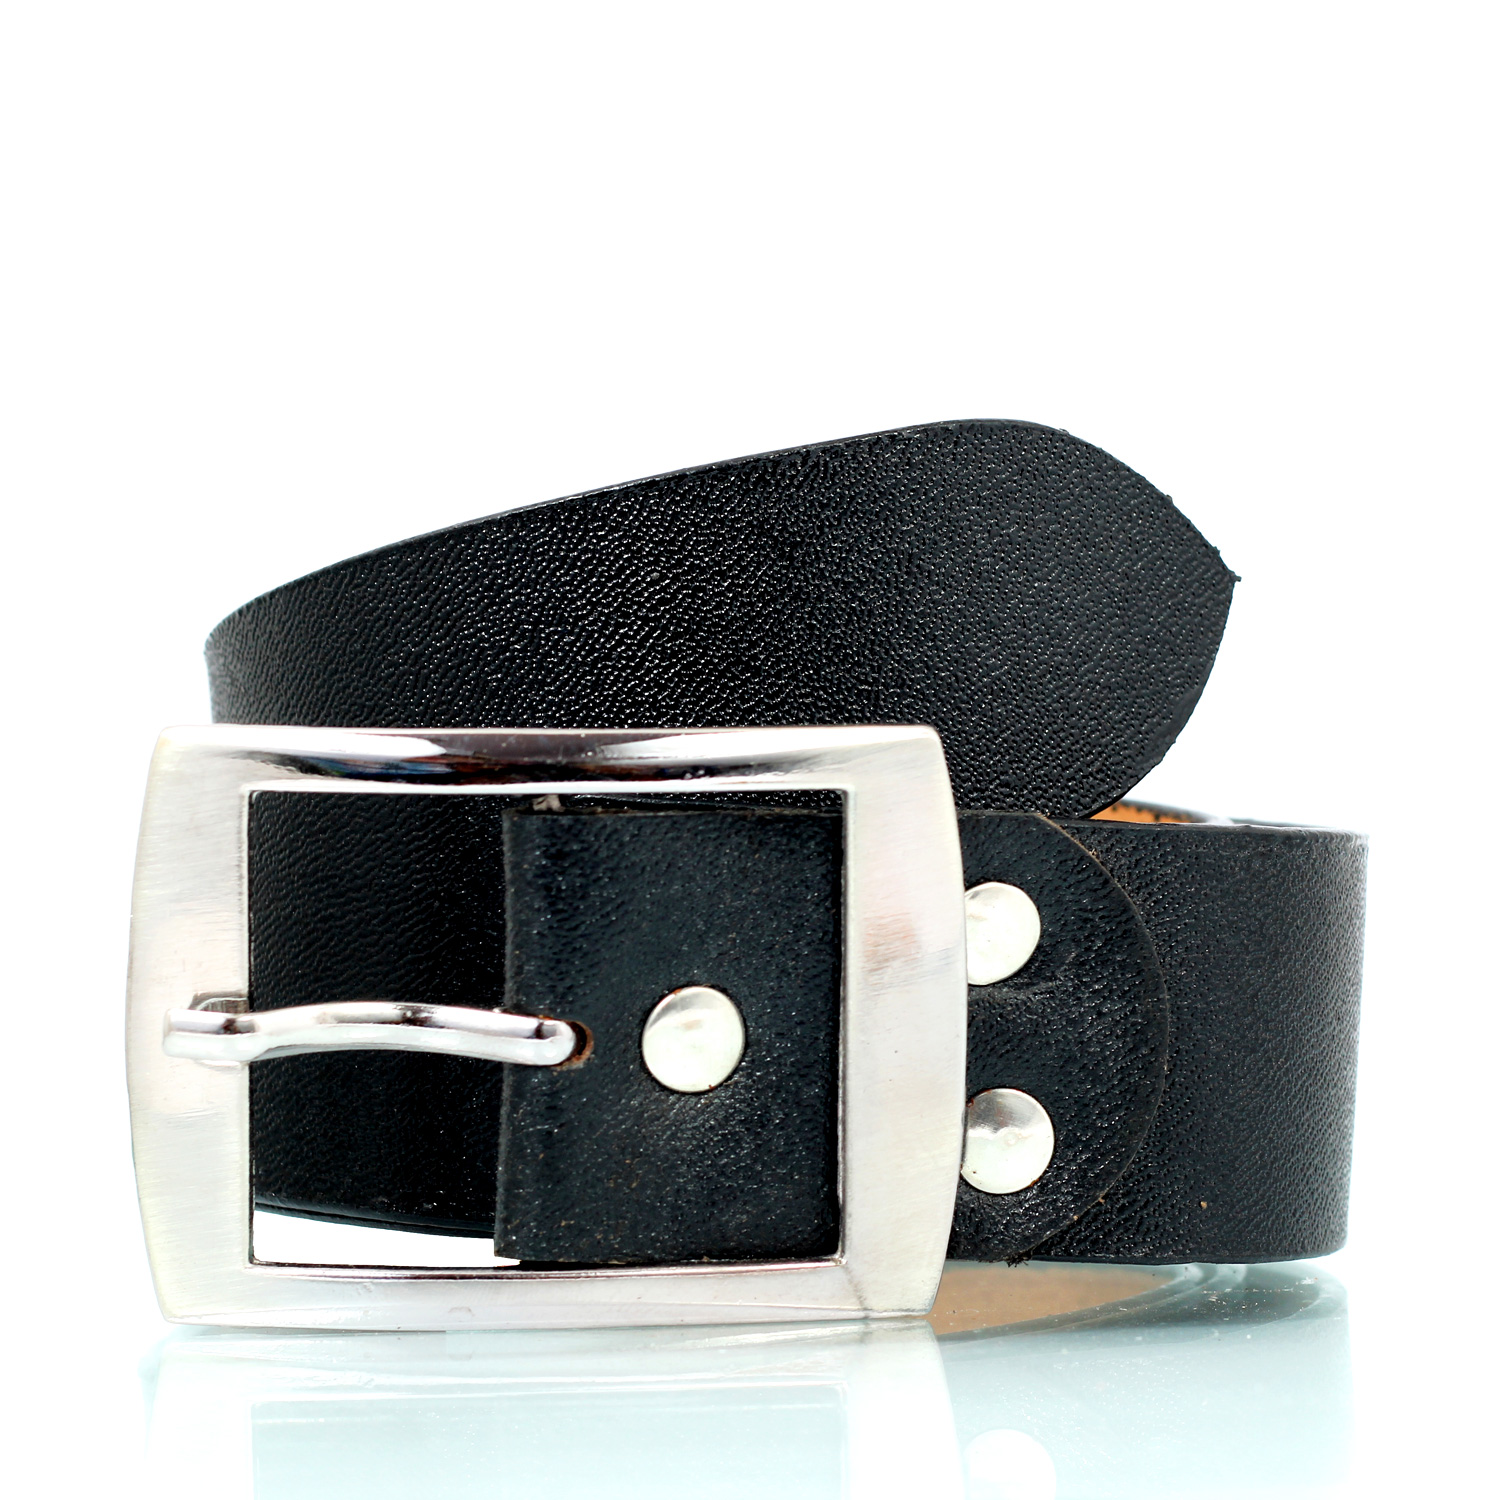 Dynamic textured pure black leather belt with metallic pins and buckle